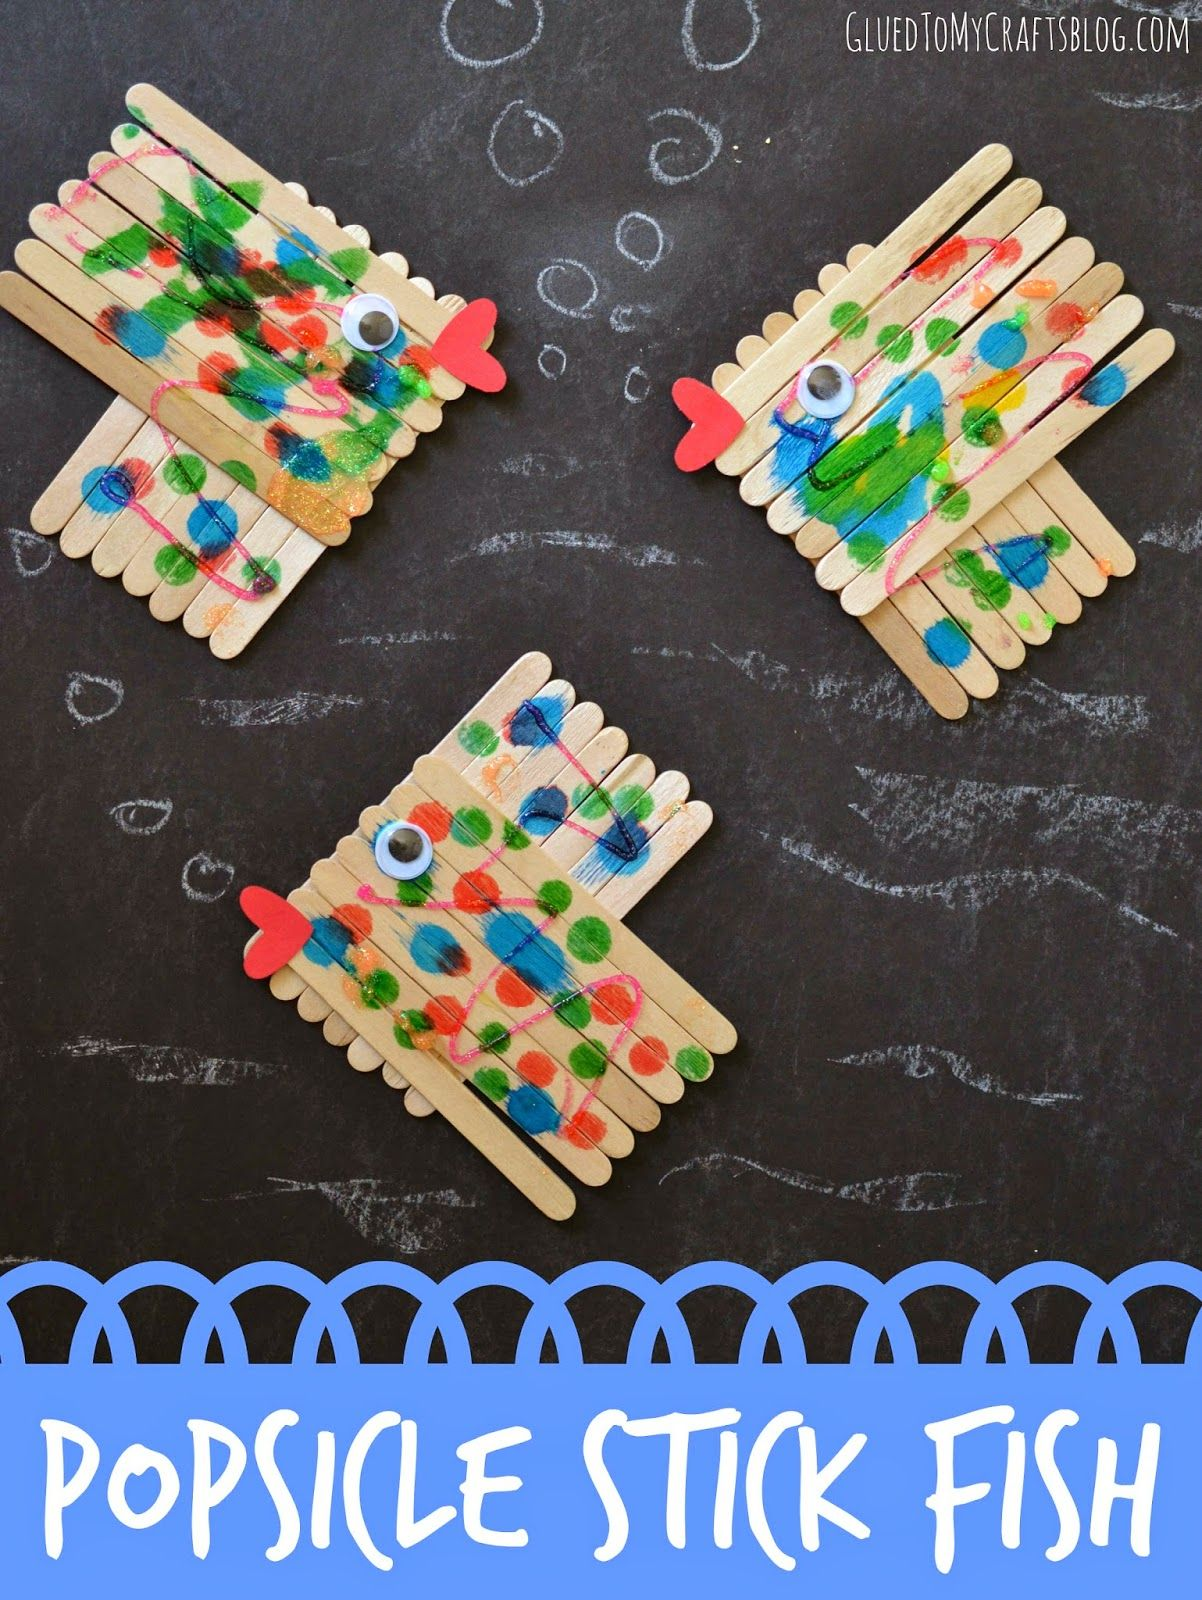 Glued To My Crafts Popsicle Stick Fish {Kid Craft}